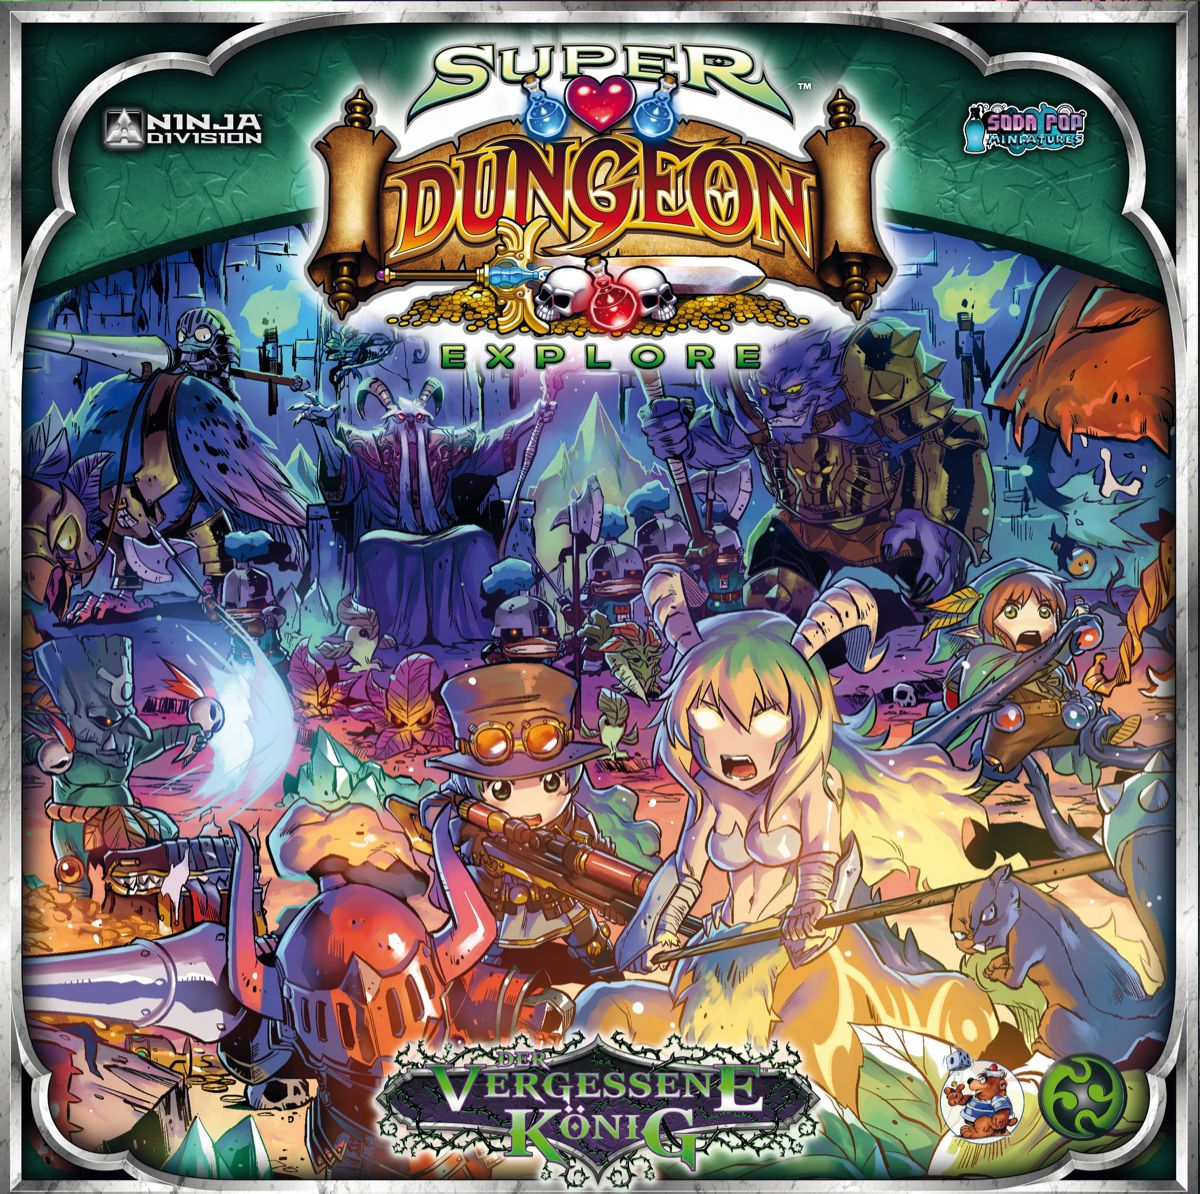 Details about Super Dungeon Explore the Forgotten King Miniature Game  (German) Board Game